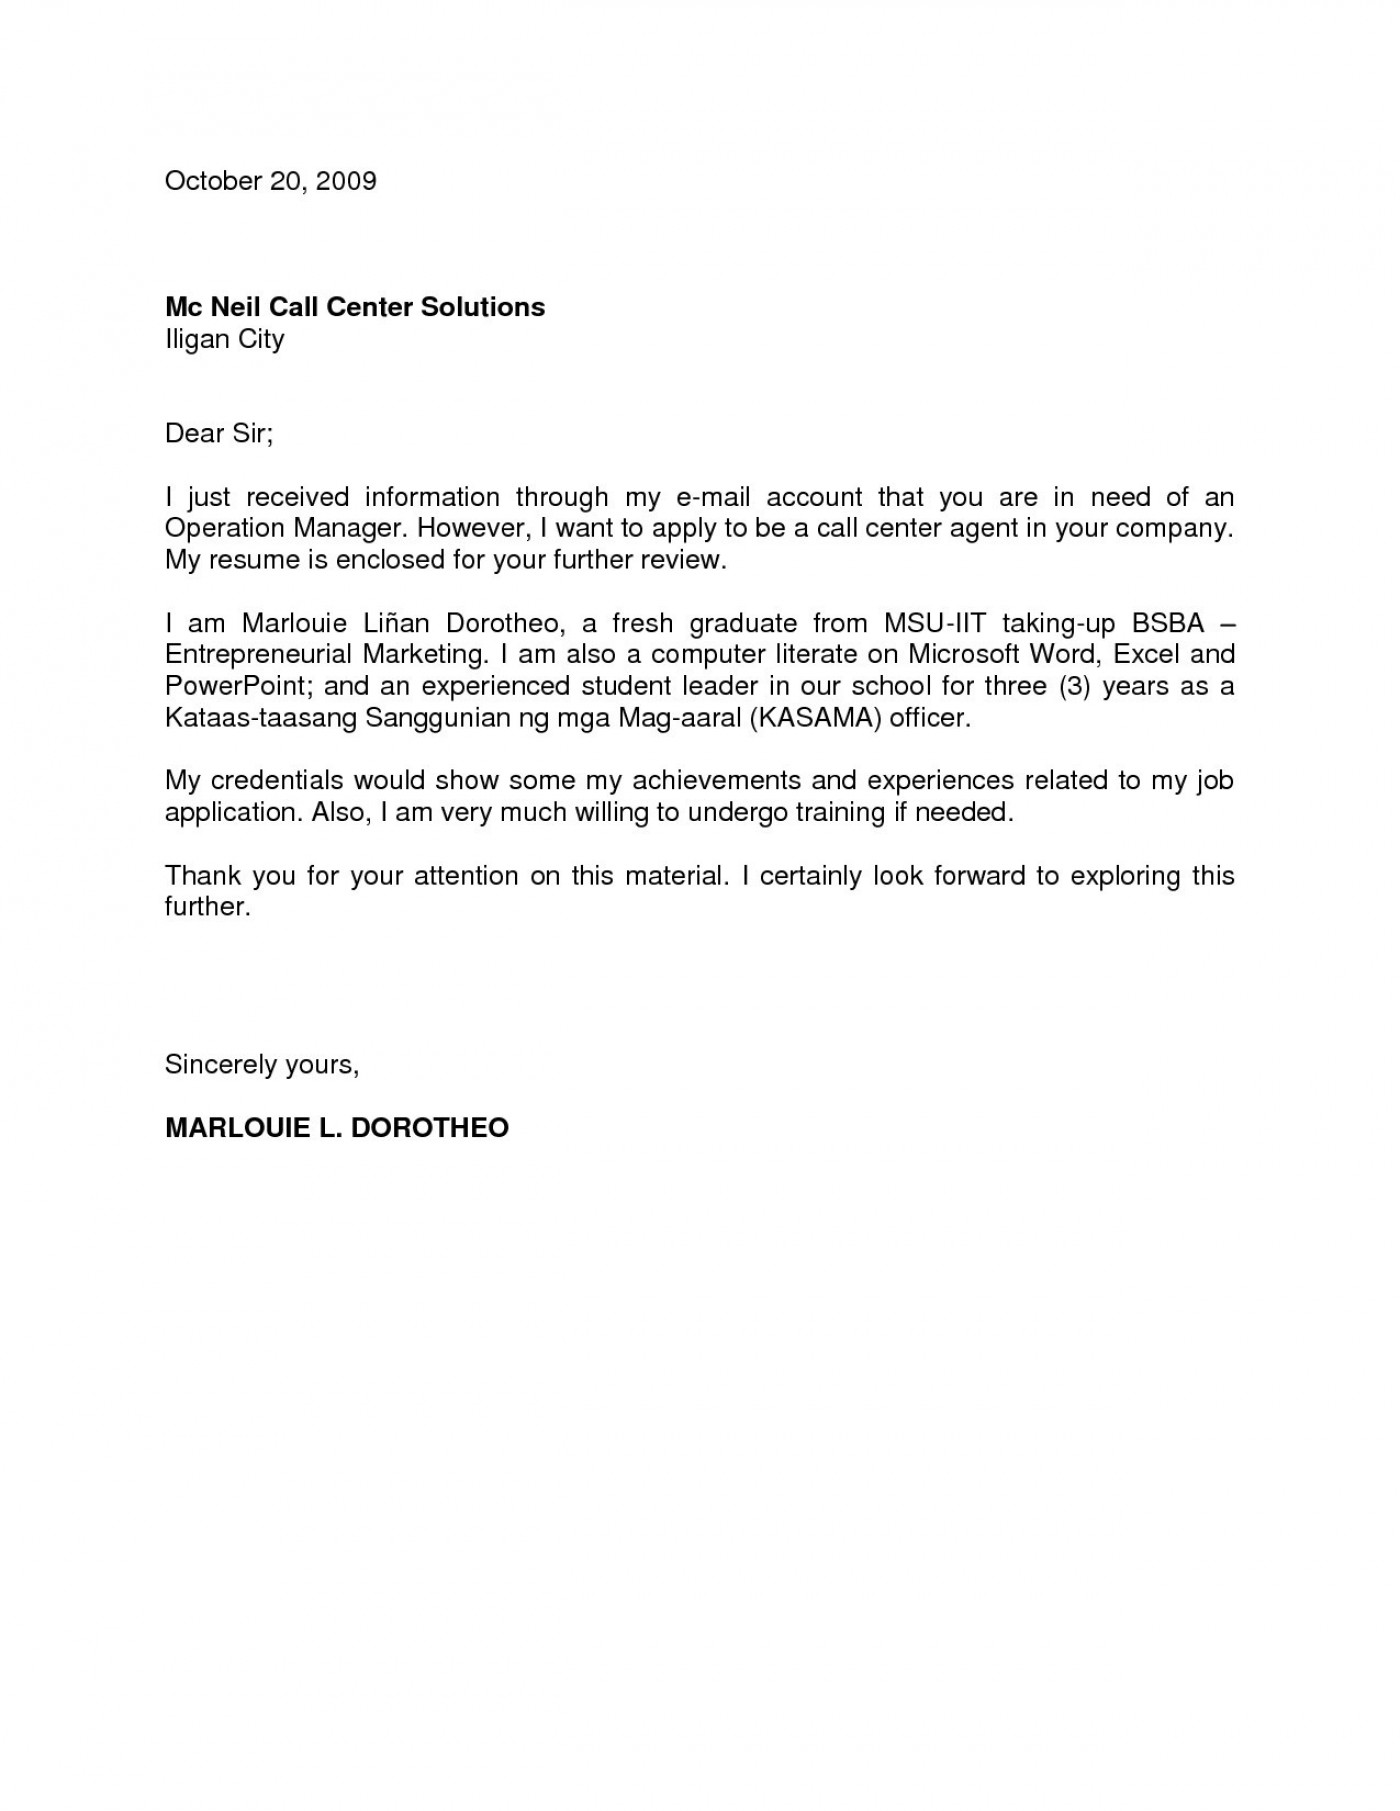 Example Cover Letter For Job from www.thatsnotus.com